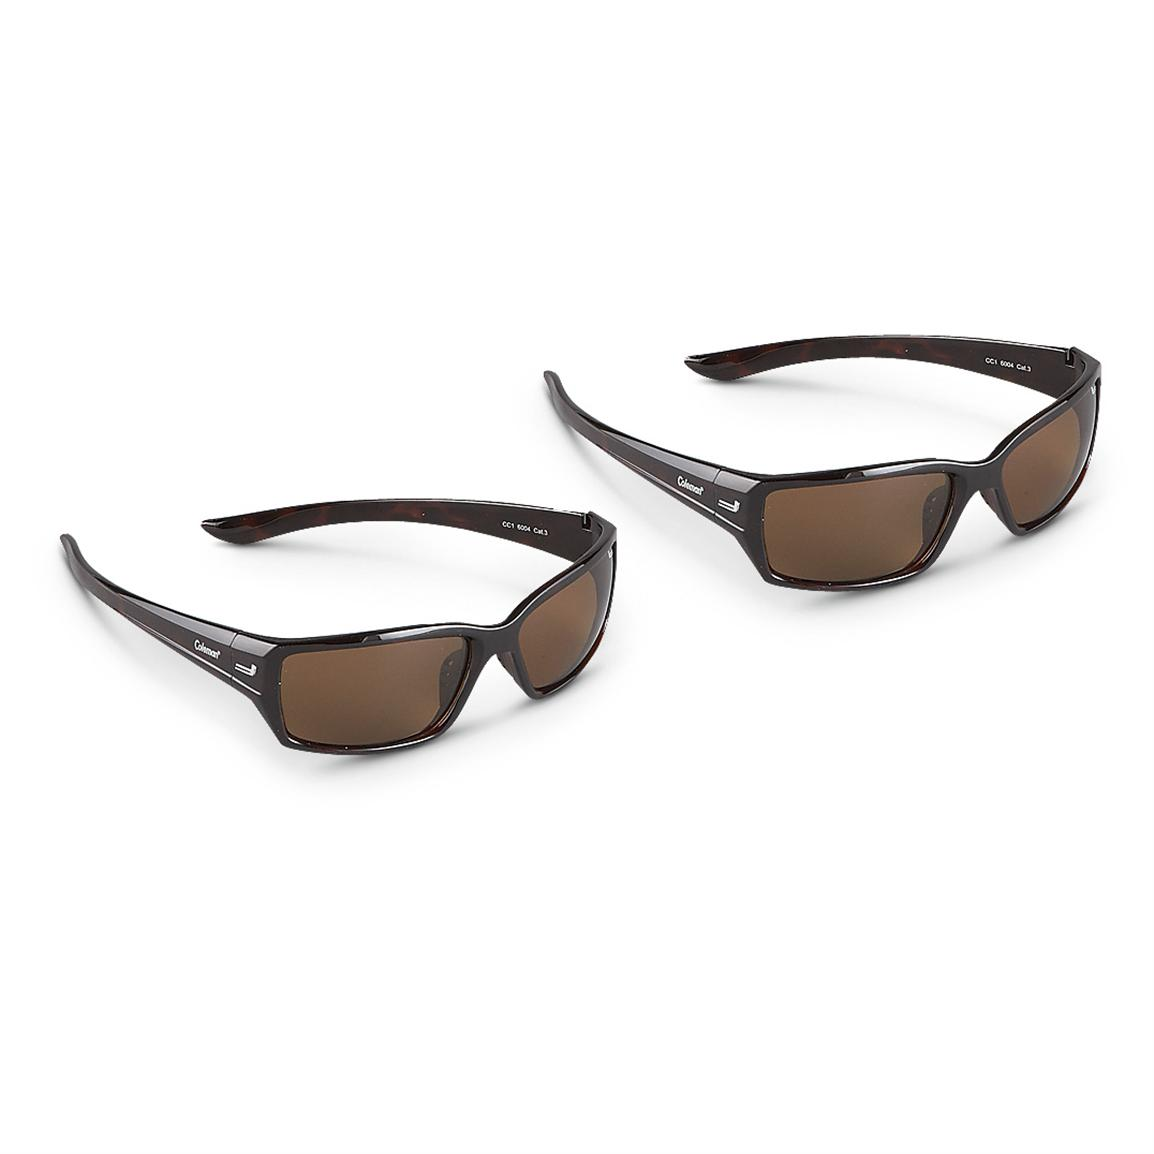 2-Pk. of Coleman® Polarized Sunglasses, Brown